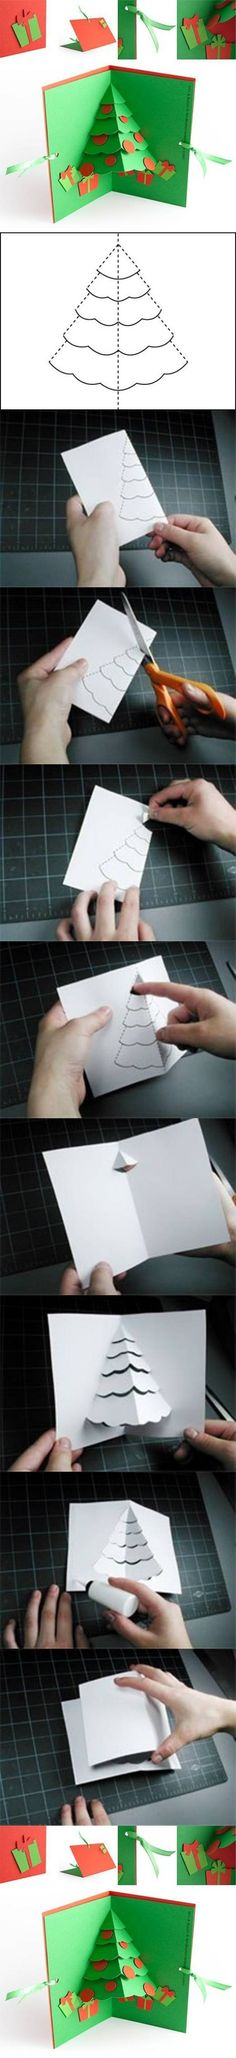 How to make Christmas Tree Pop Up Card step by step DIY tutorial instructions 512x4465 How to make Christmas Tree Pop Up Card step by step DIY tutorial instructions